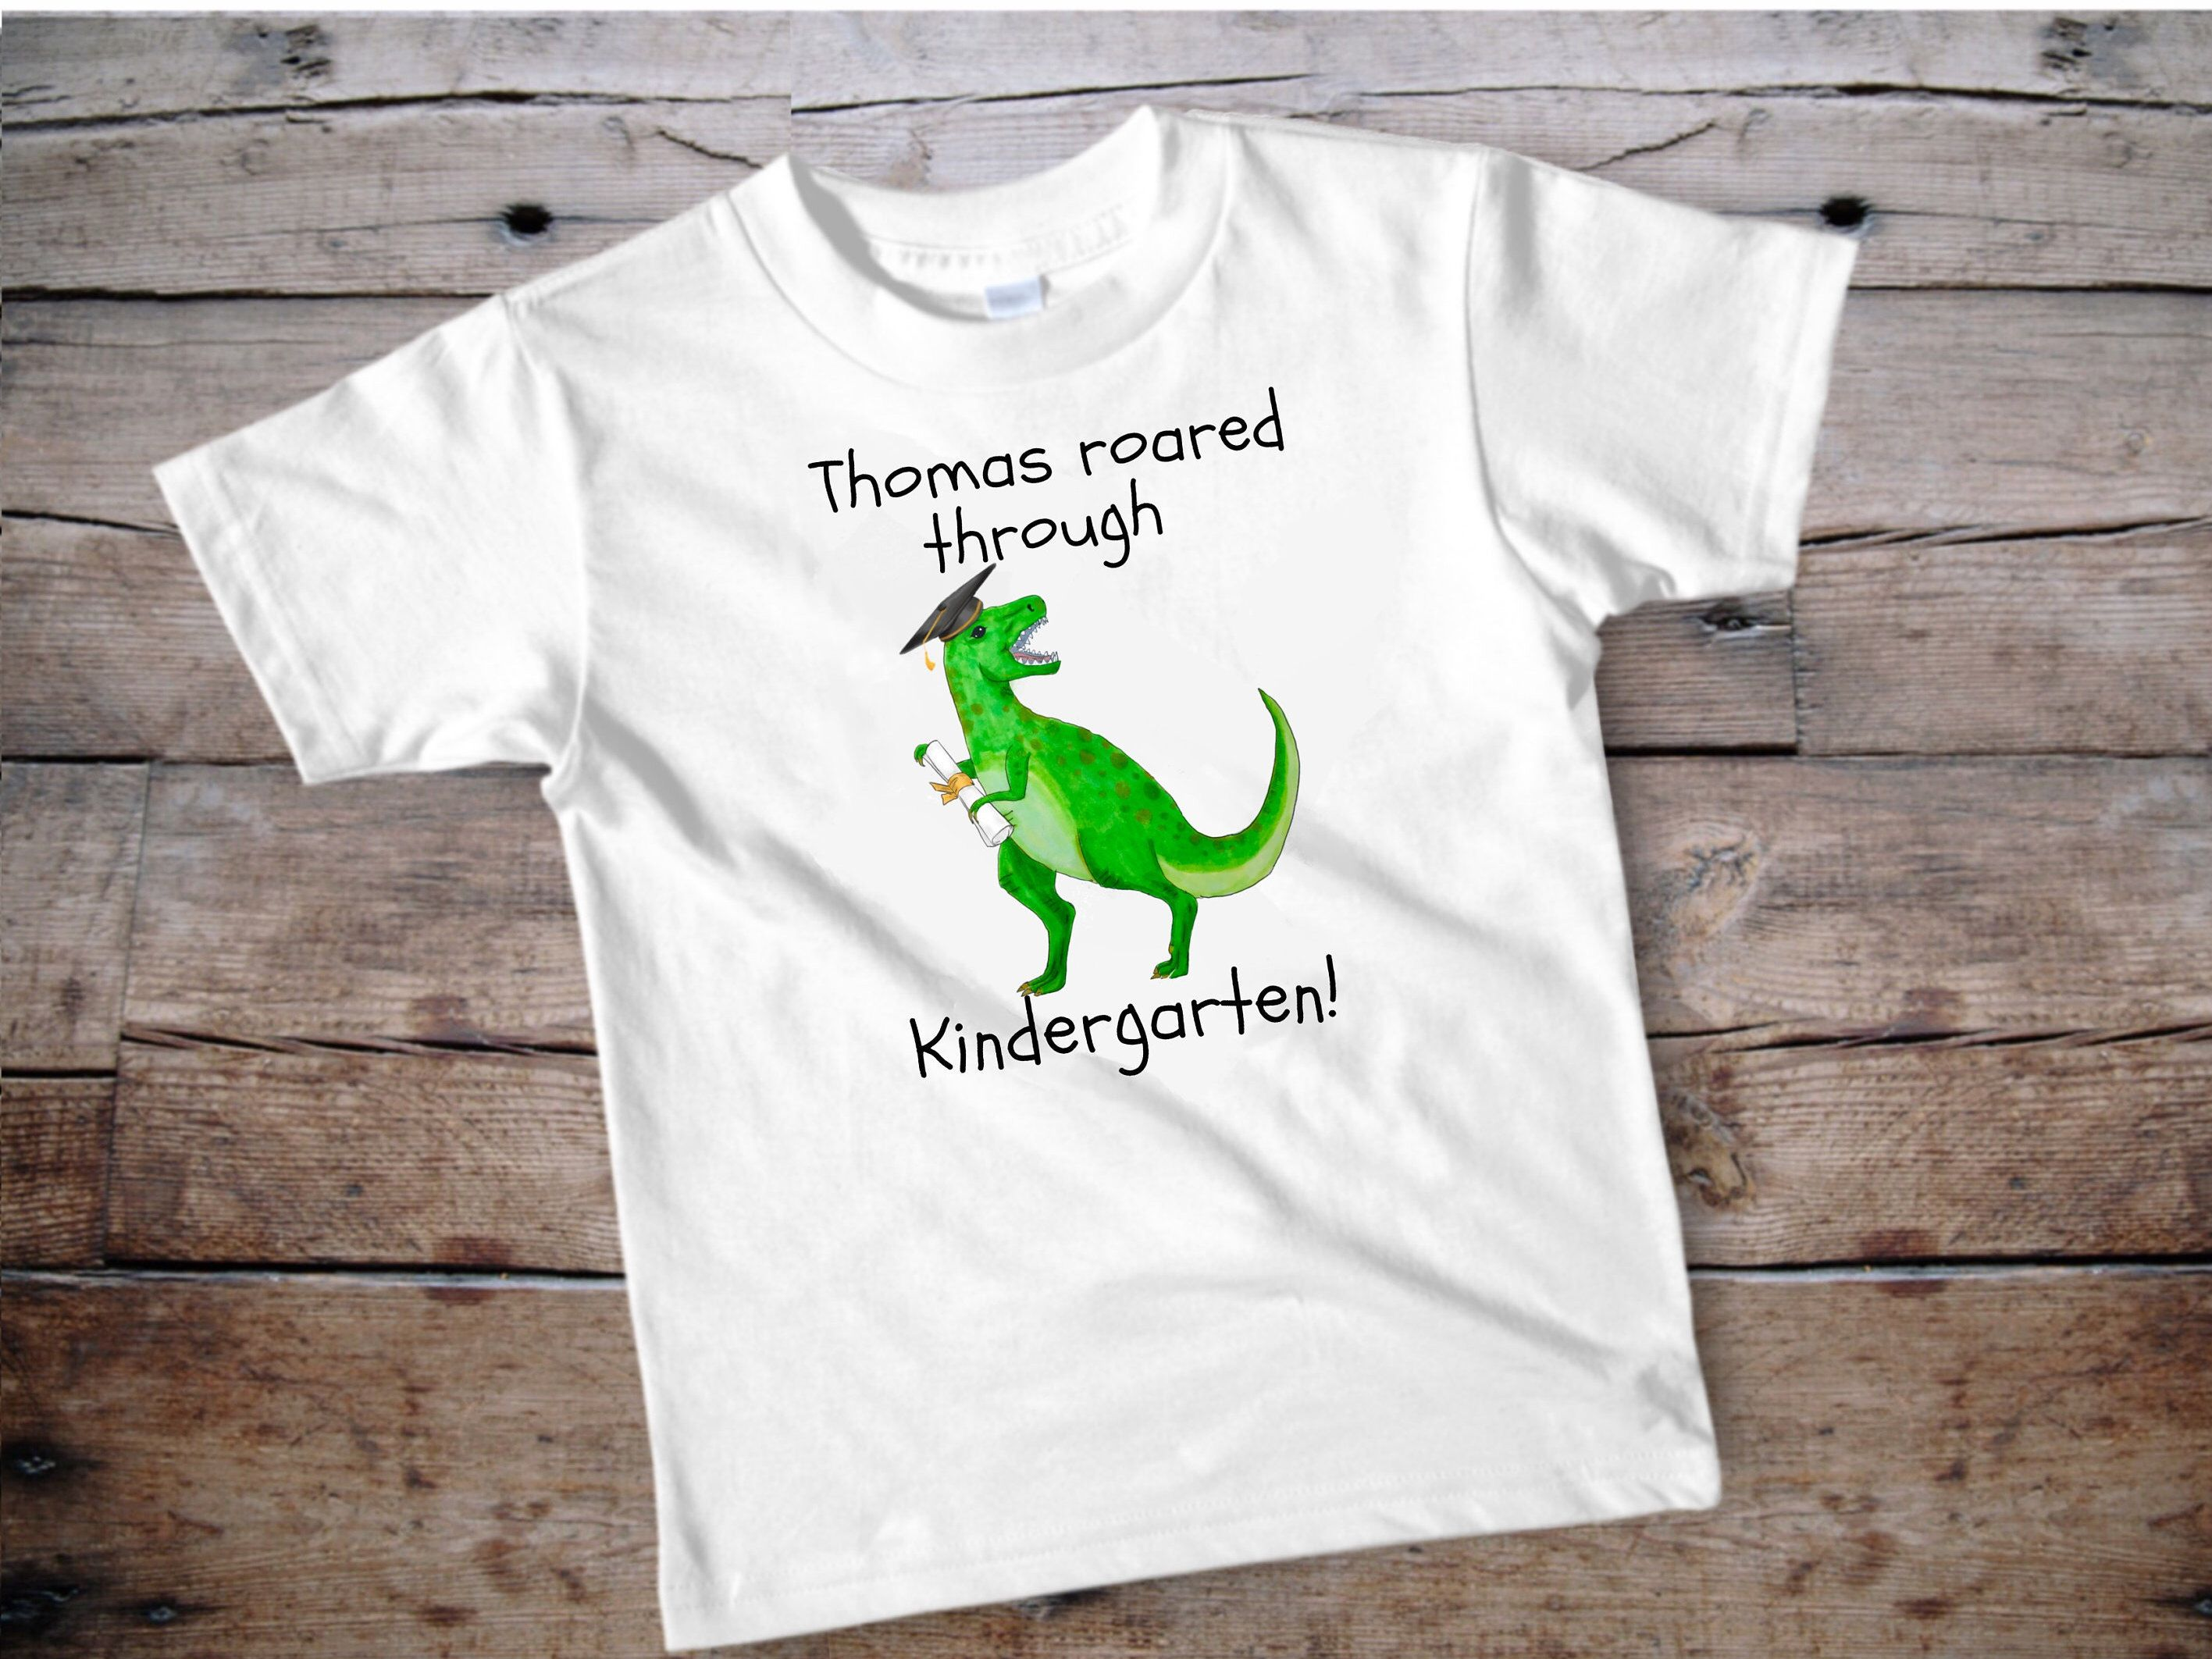 8b2bd3d88 Graduation shirt, kid graduation shirt, custom graduation shirts, dinosaur  shirt, kindergarten tshirt, kindergarten graduation, dinosaur tee